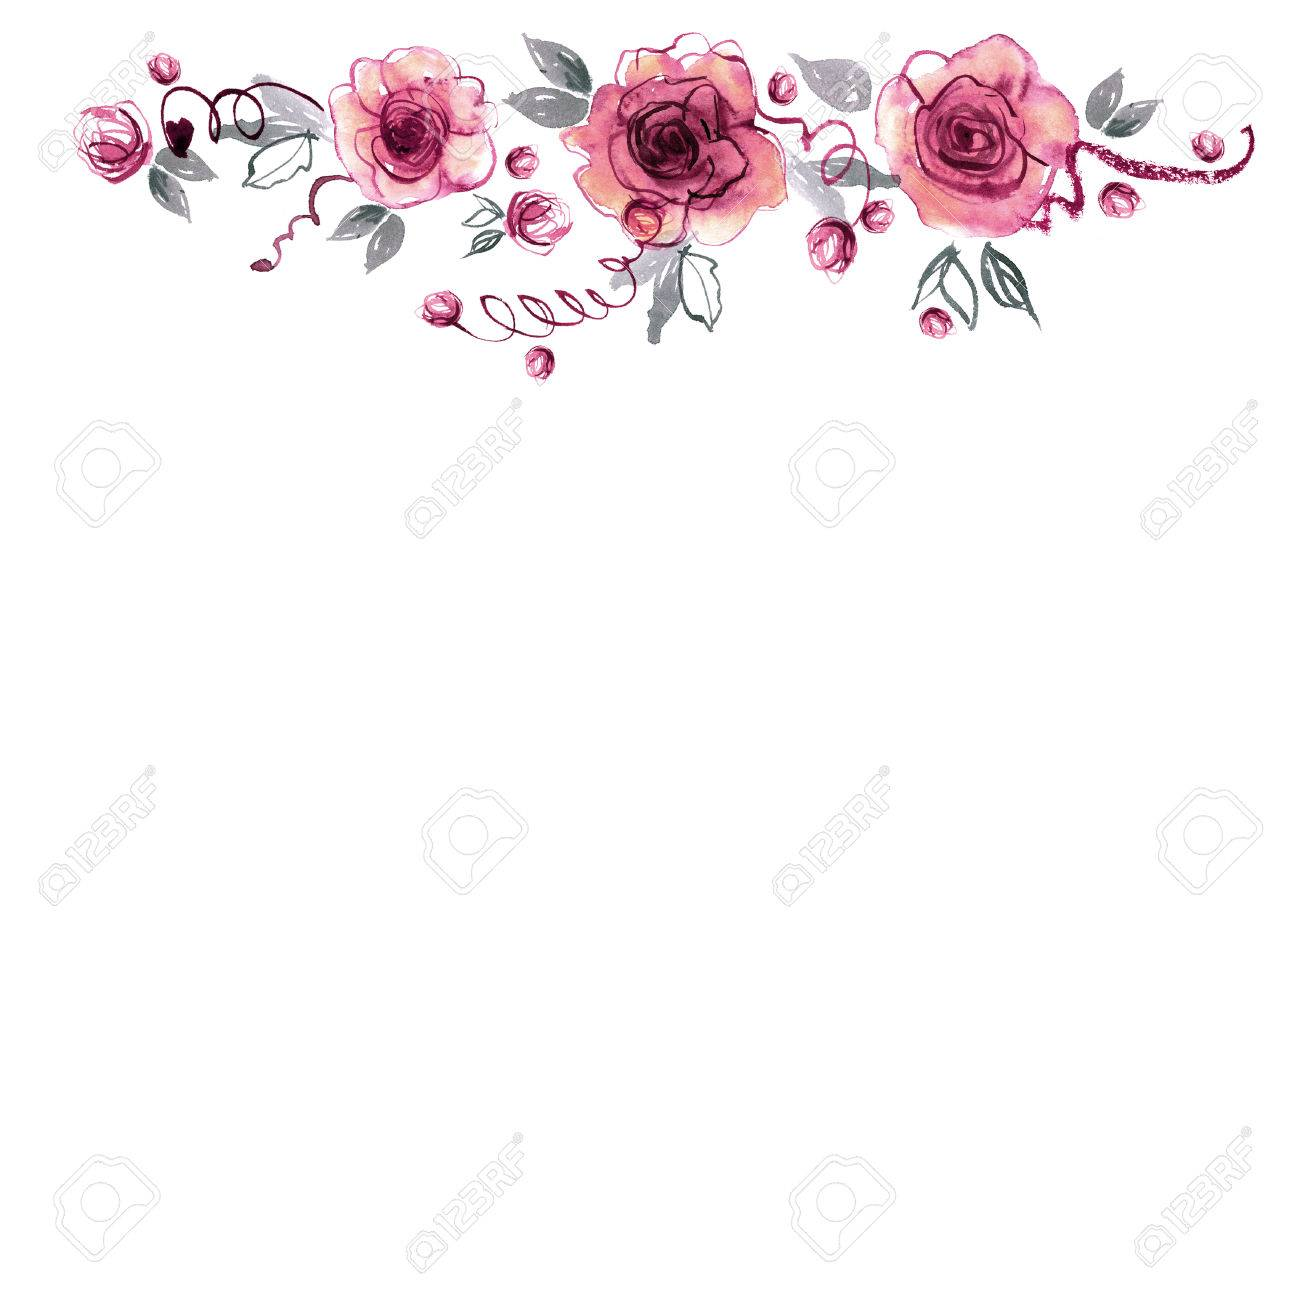 Cute Watercolor Hand Painted Flower Border Background With Pink